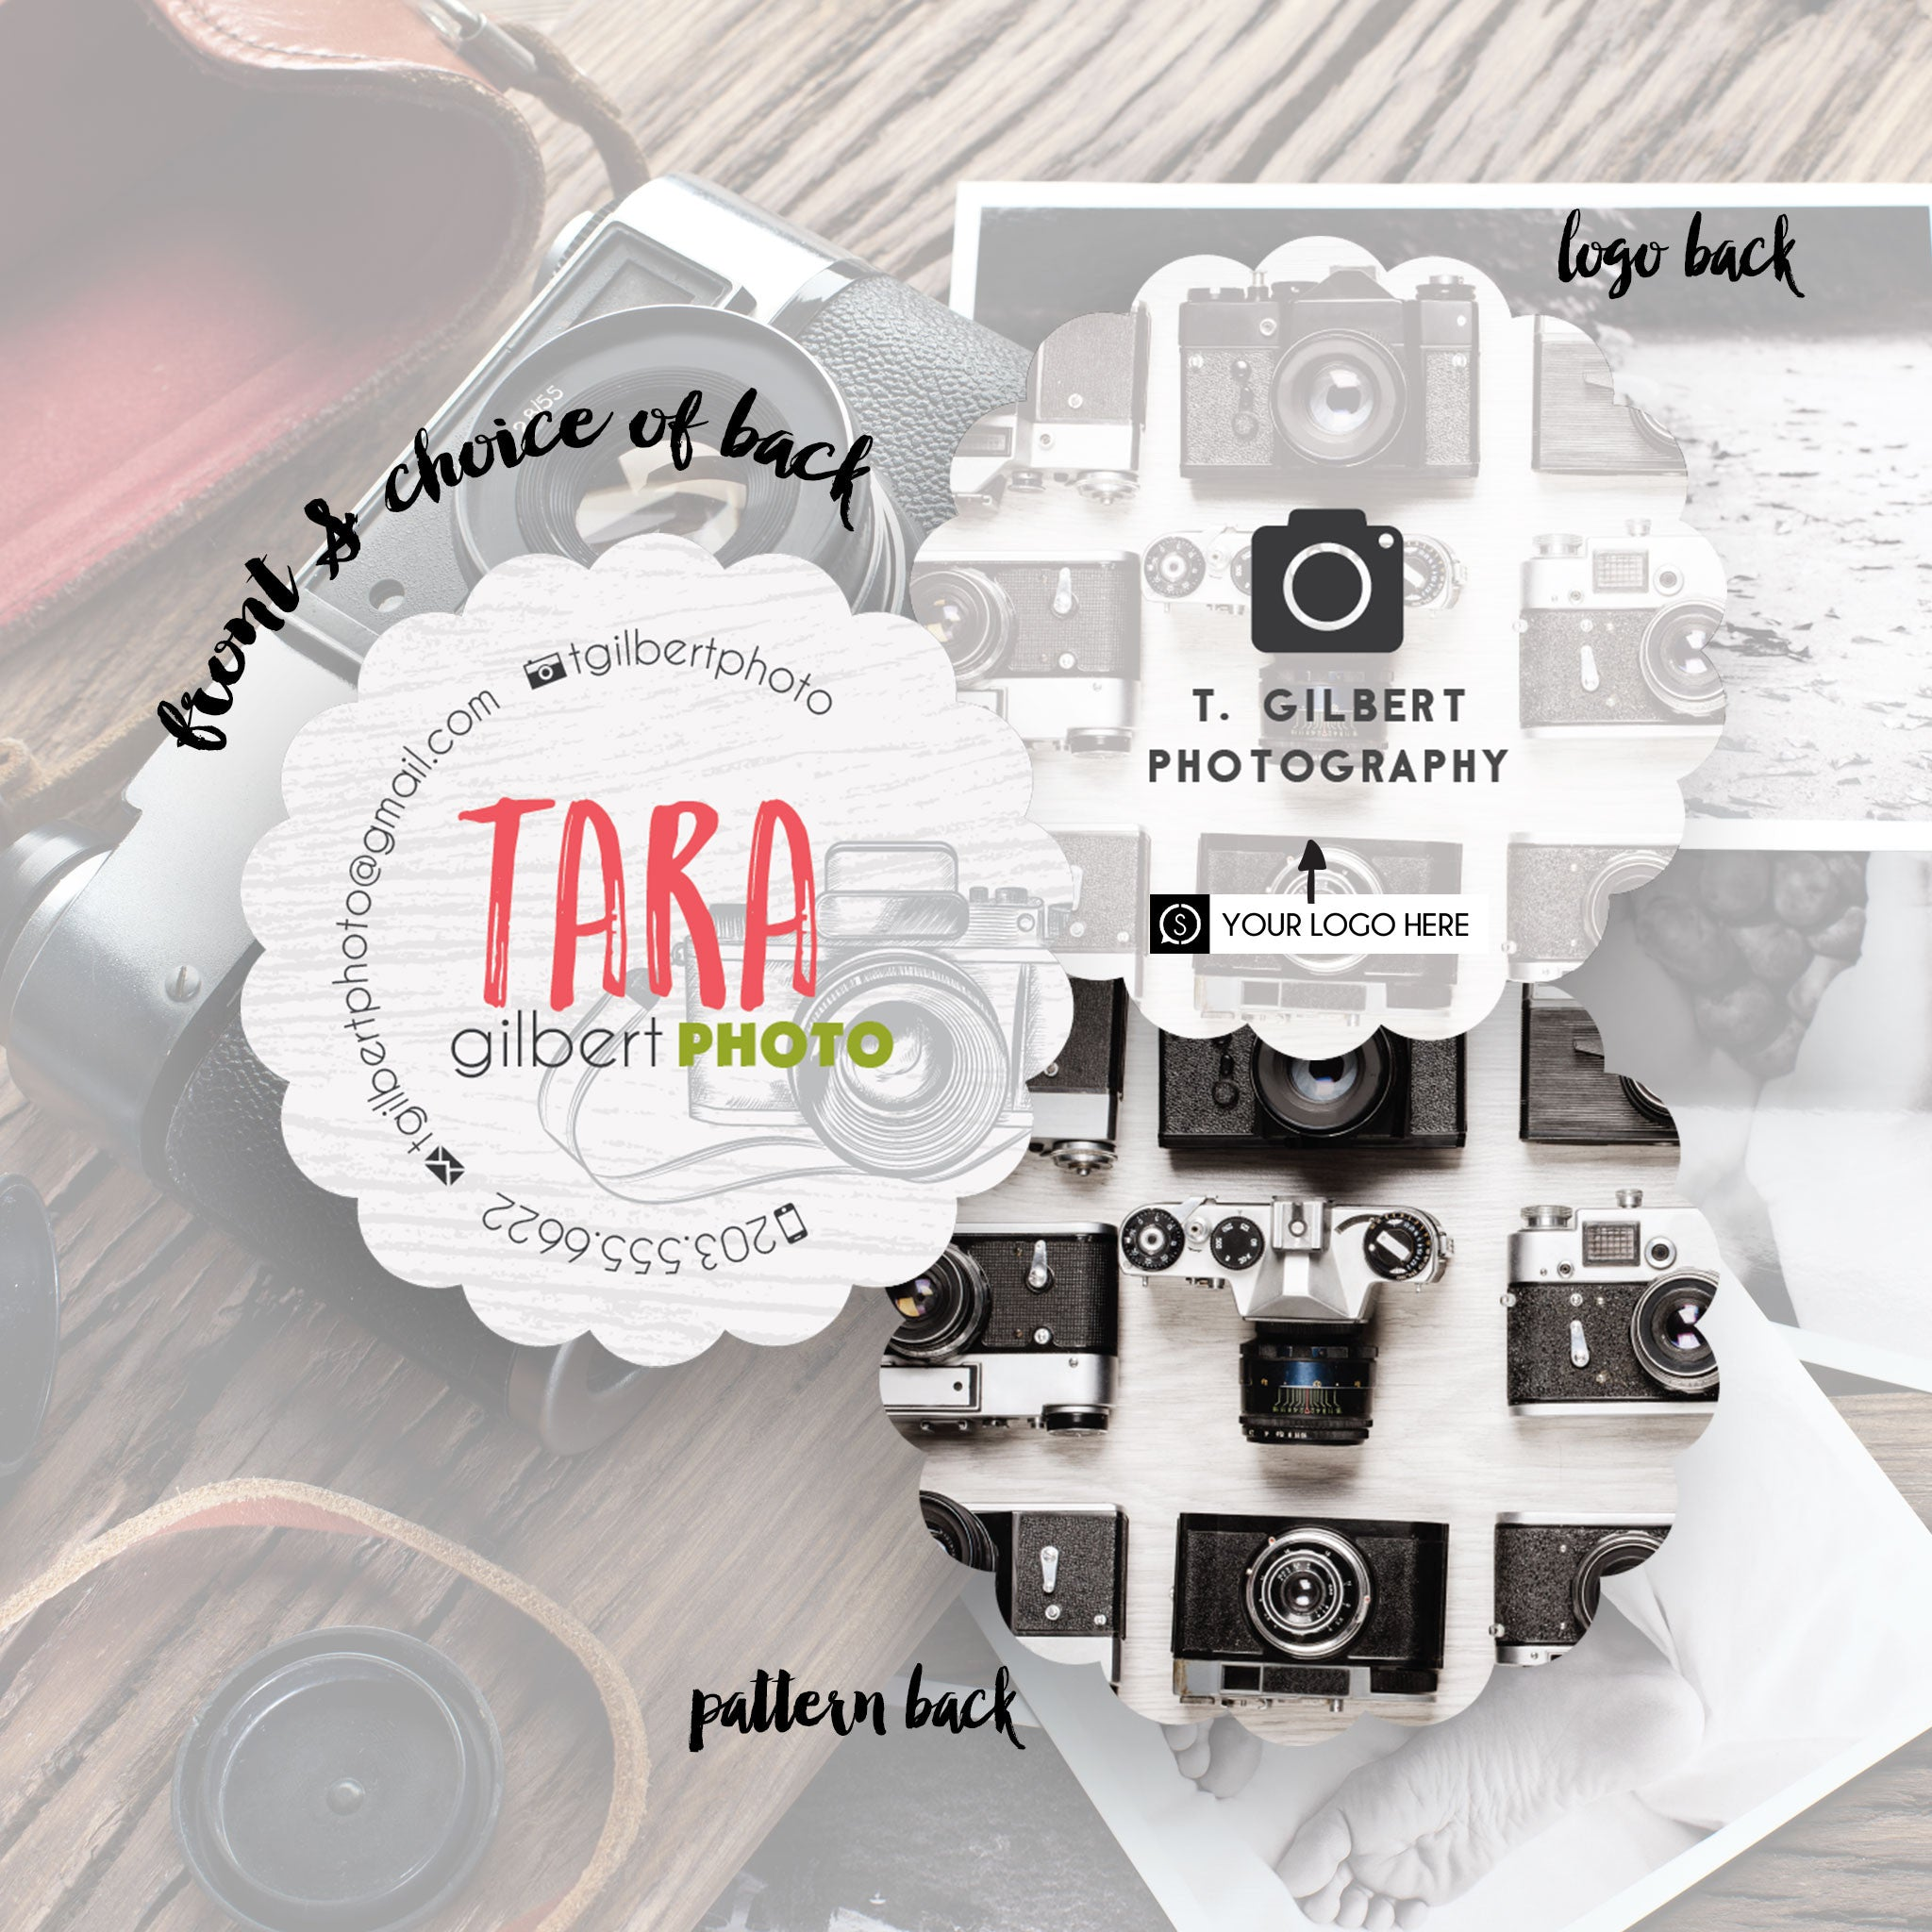 Tara - Business Cards